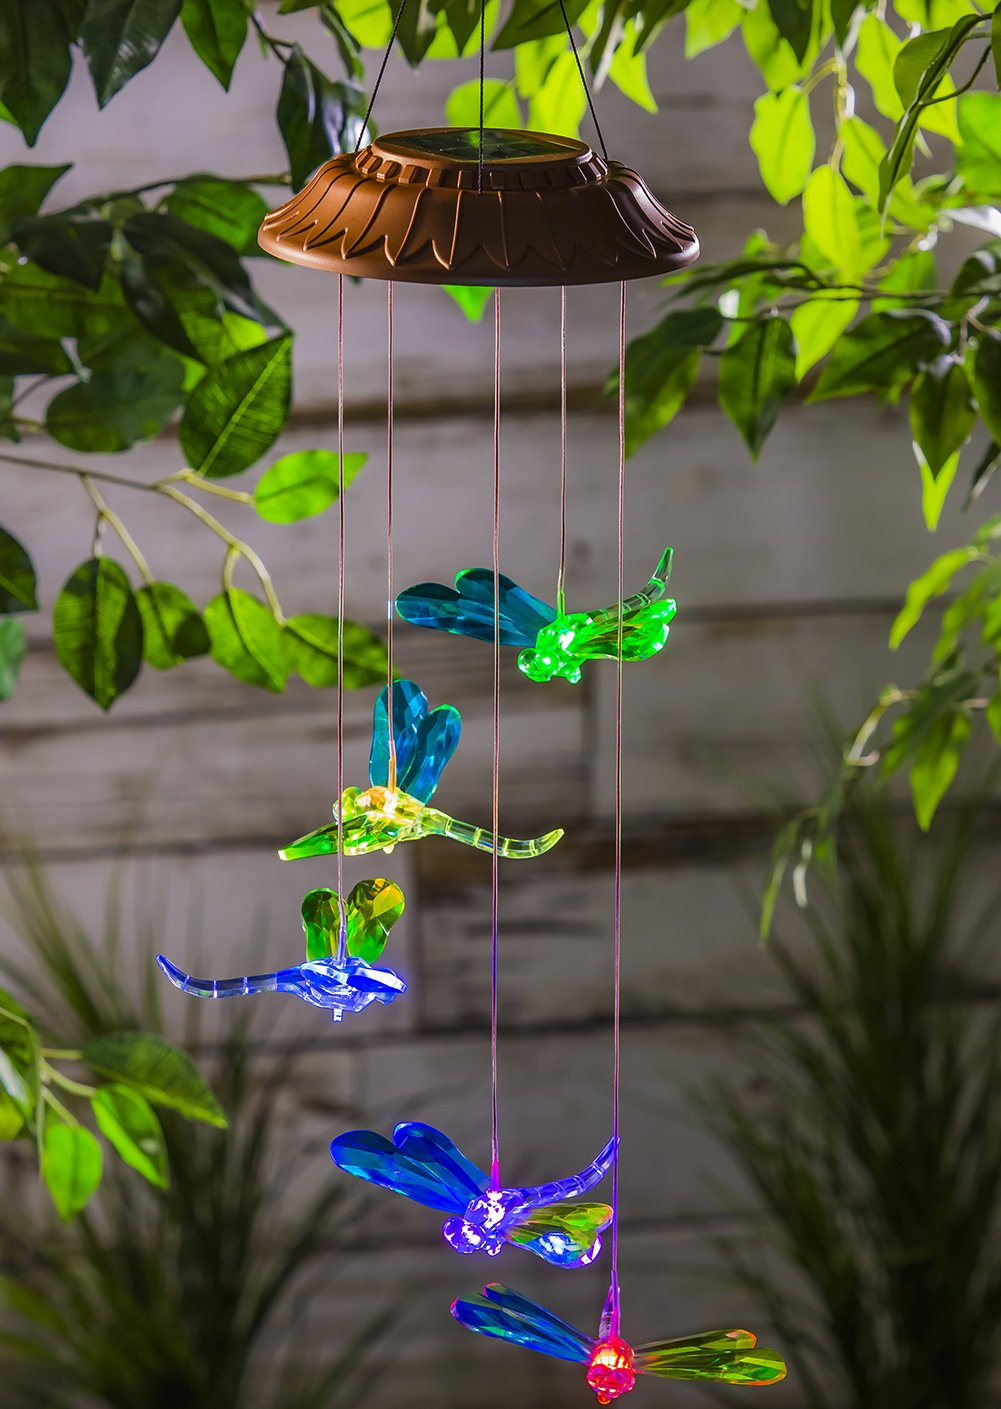 Ivy Home Solar Mobile Wind Bell Color Changing Faceted Wind Chimes for Outdoor Garden Décor Dragonfly